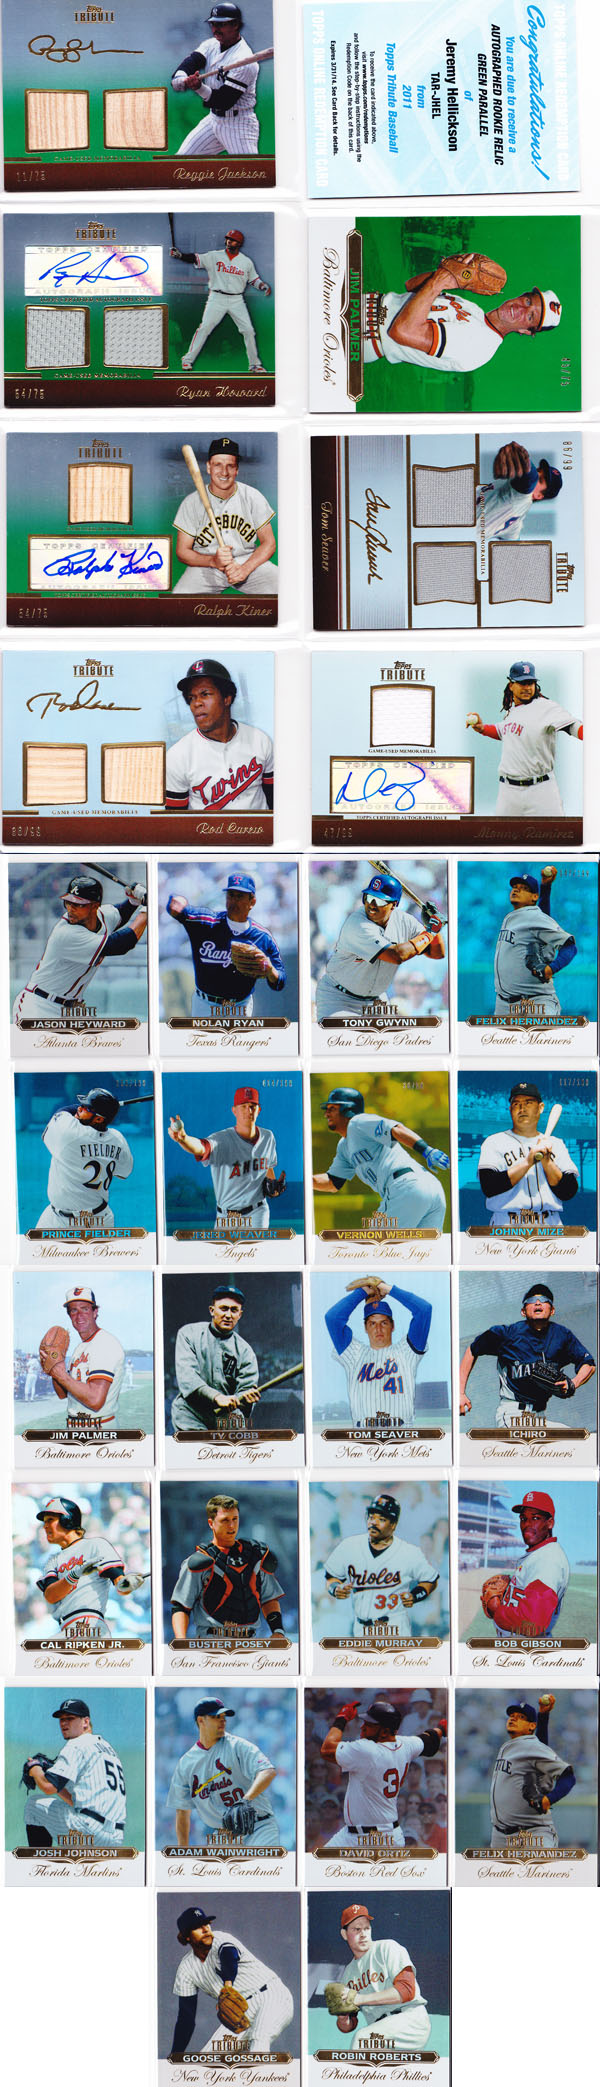 2011 Topps Tribute Baseball Review 12